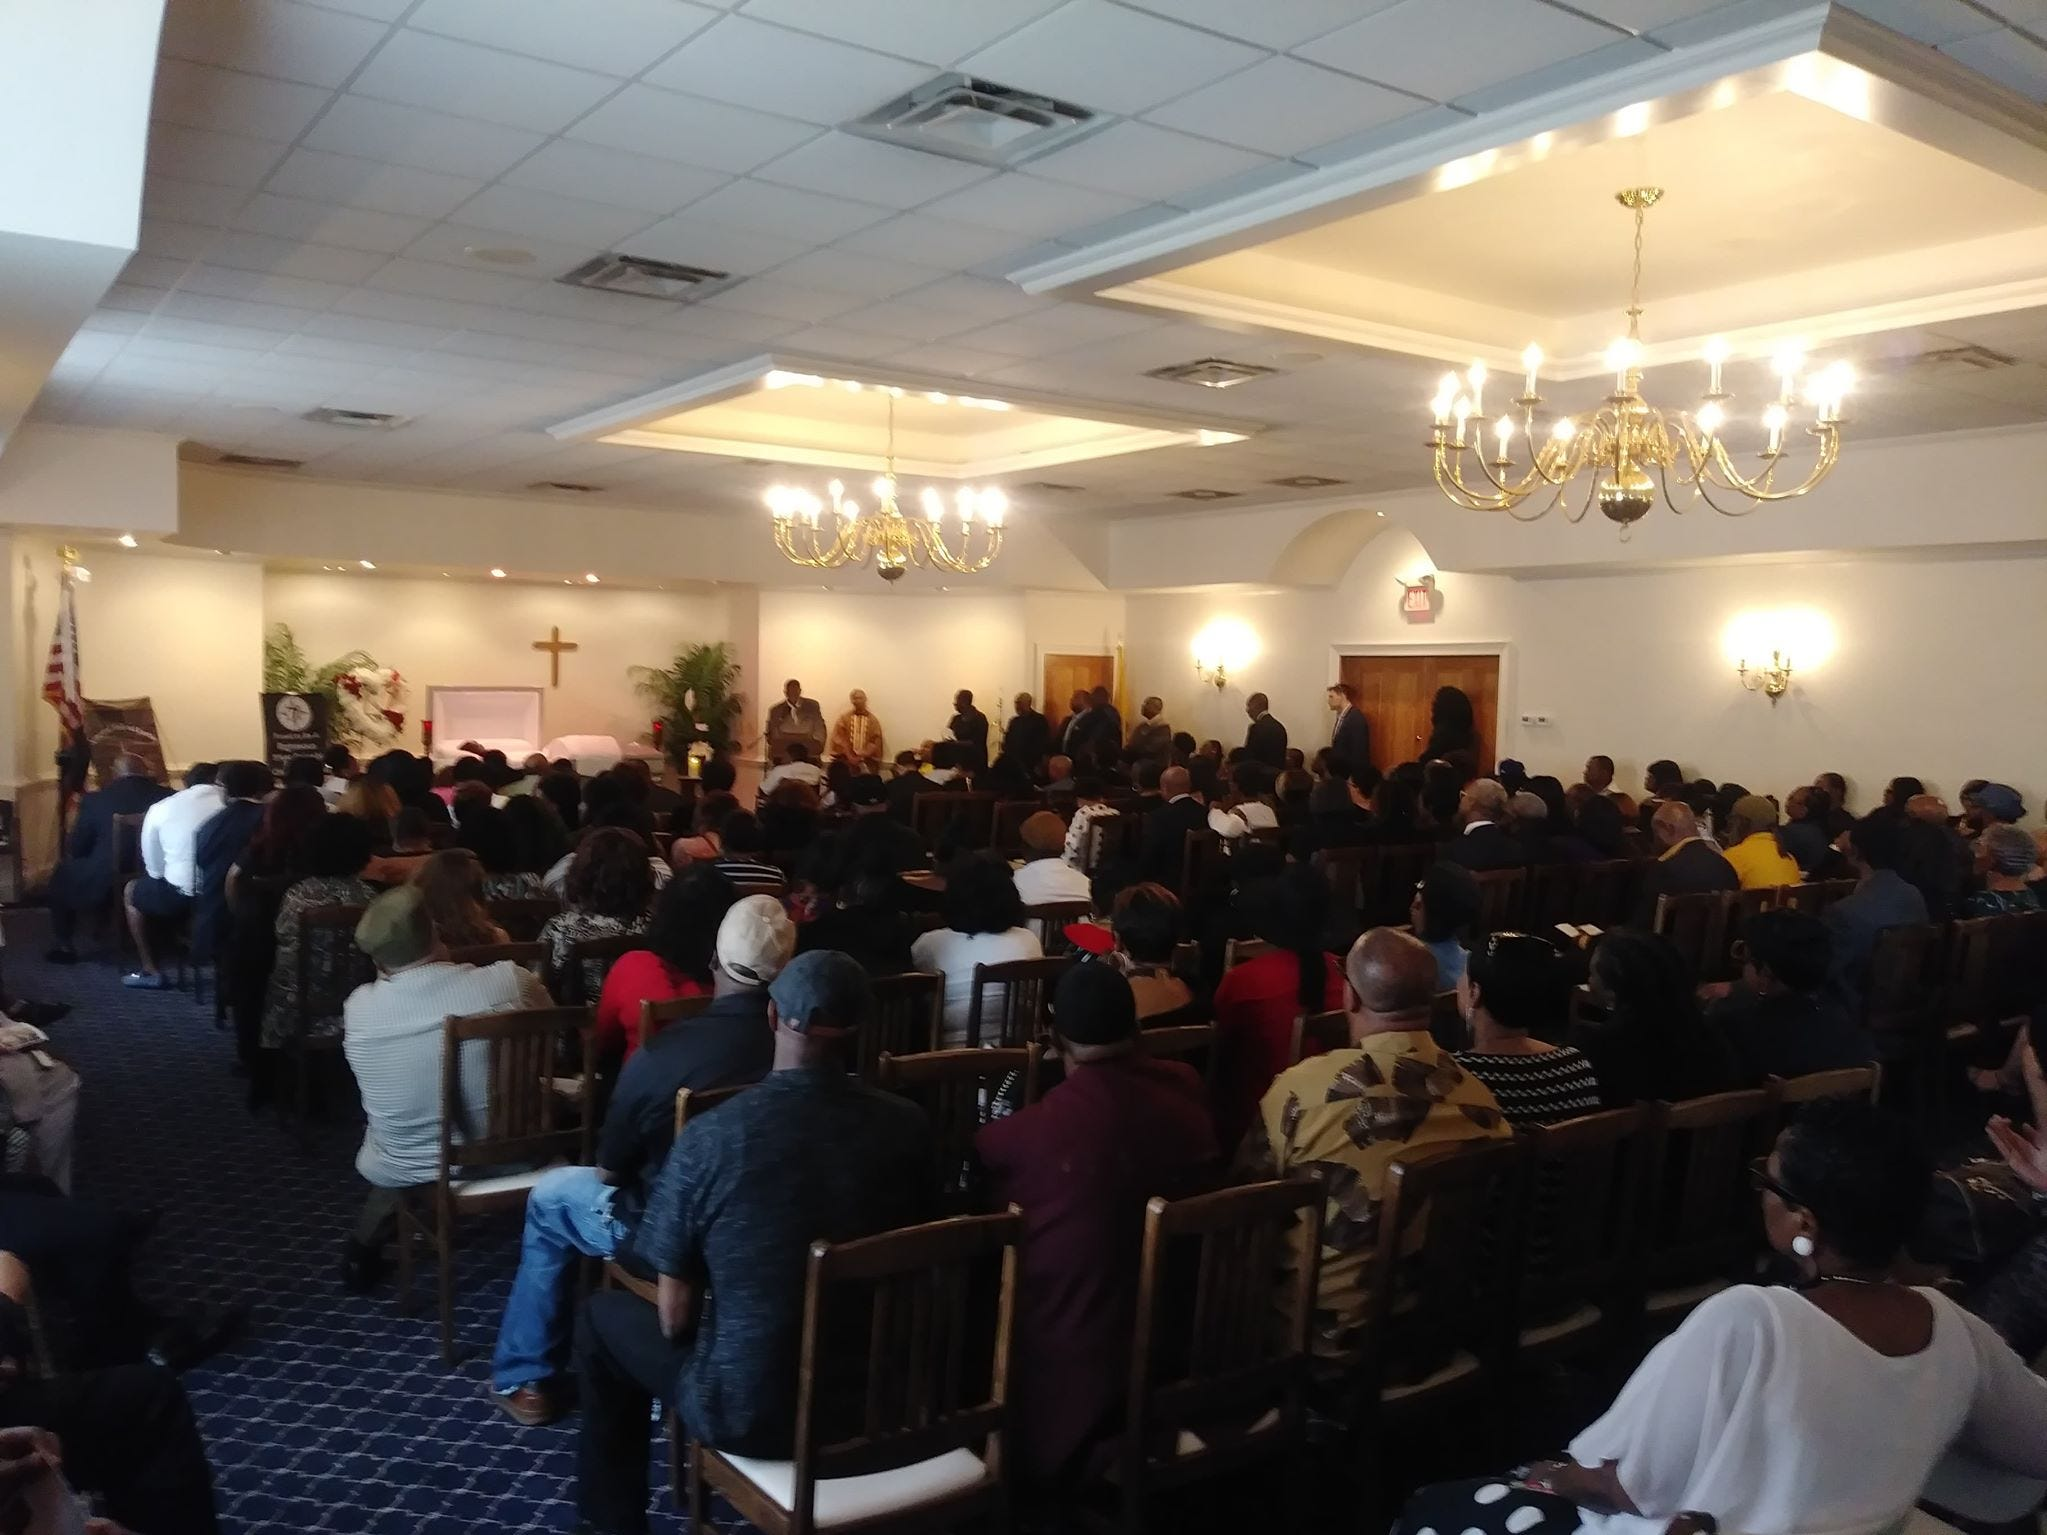 """Family and friends gathered at Earl """"Everlasting"""" Sanders' packed funeral on May 5, 2018 at Ely Funeral Home in Neptune."""